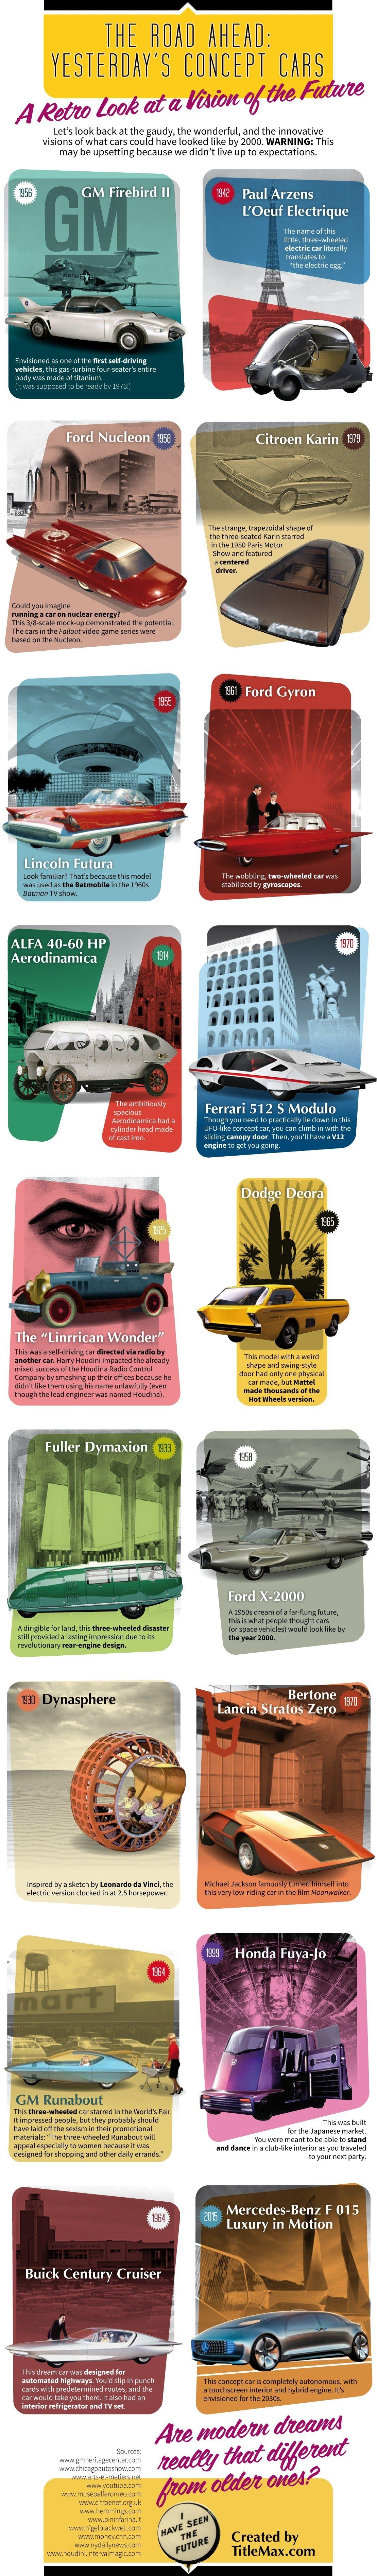 Yesterday's Concept Cars #infographic